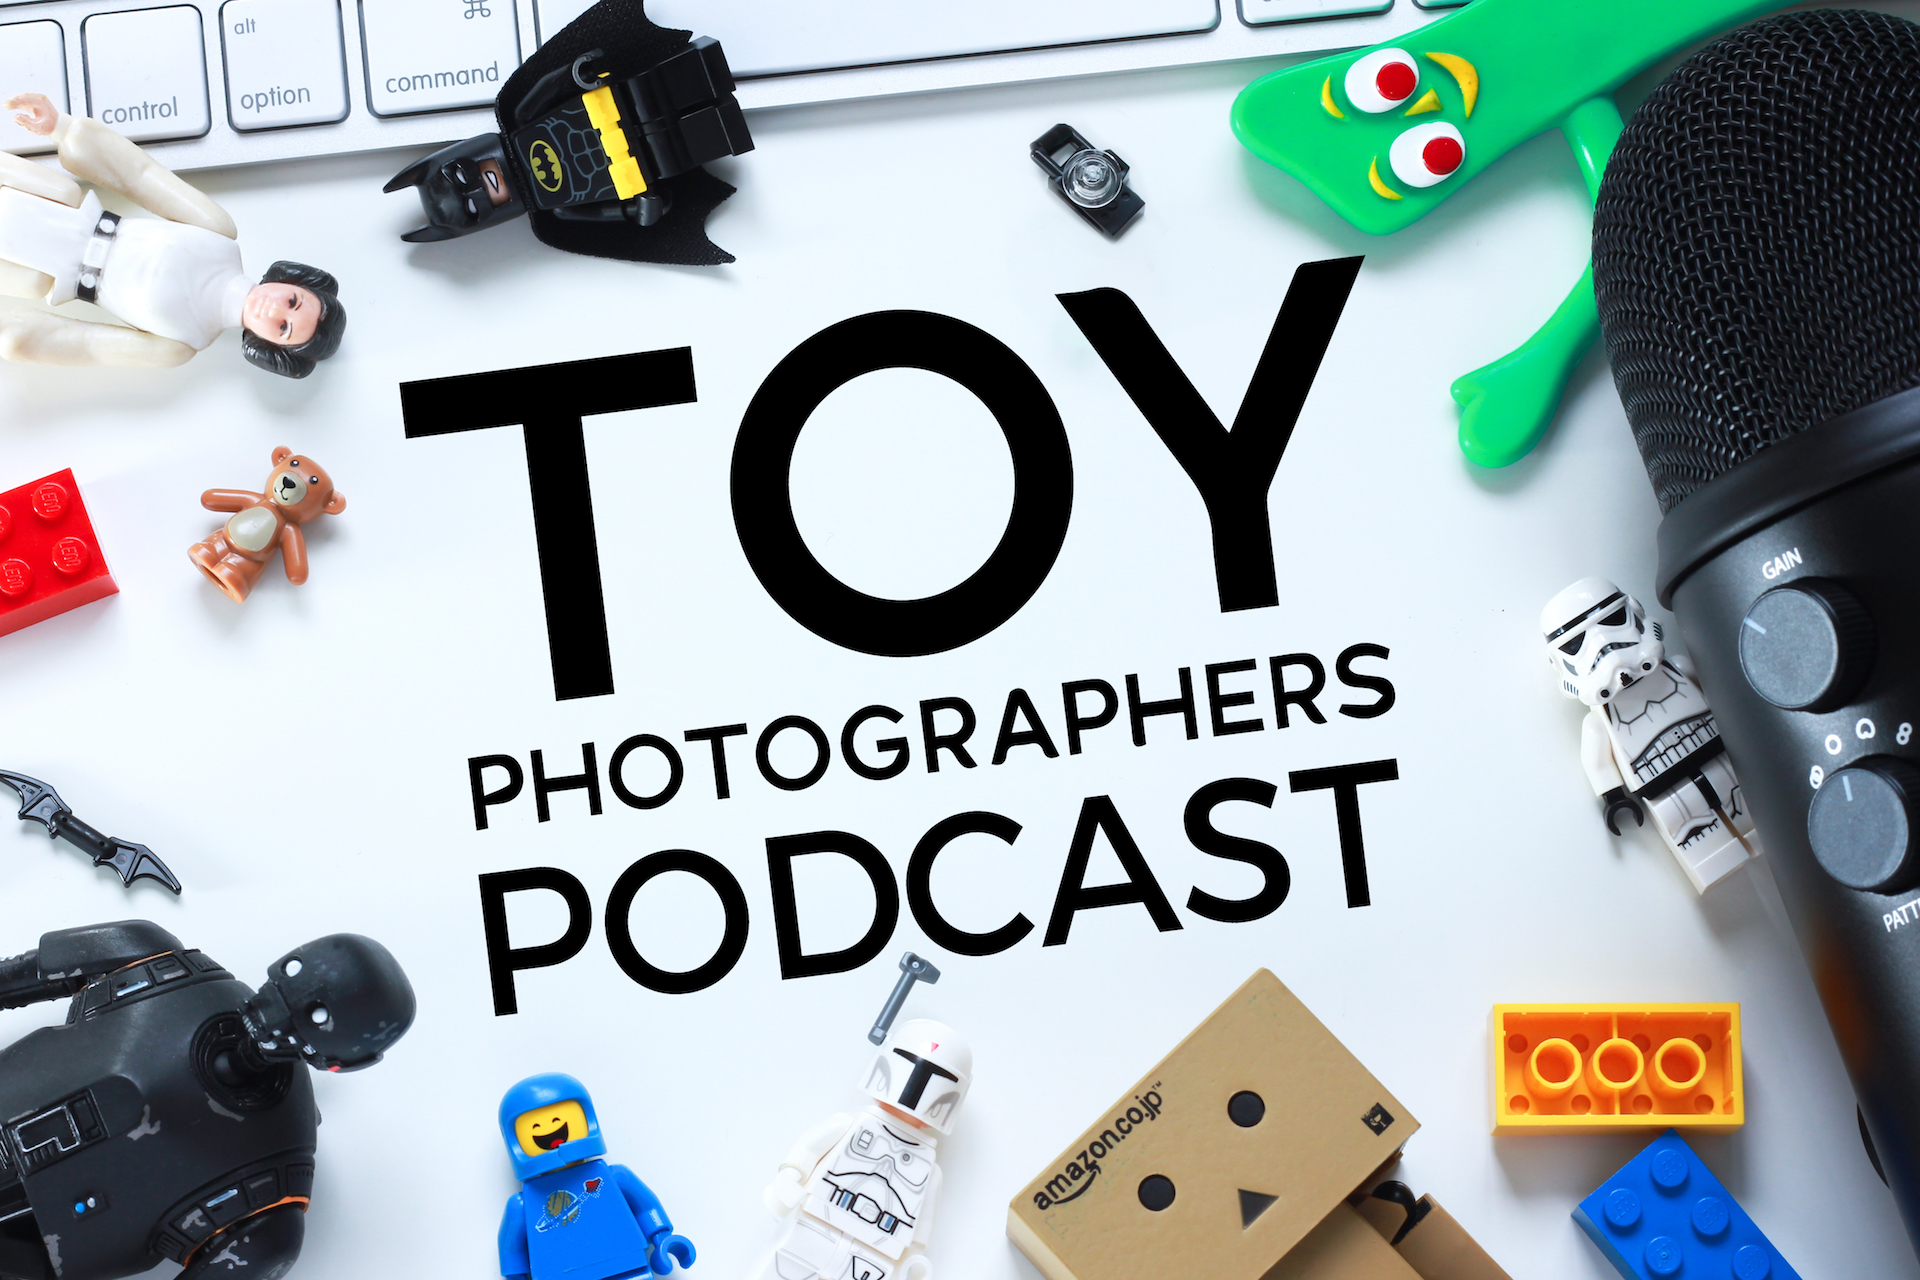 Introducing the Toy Photographers Podcast!